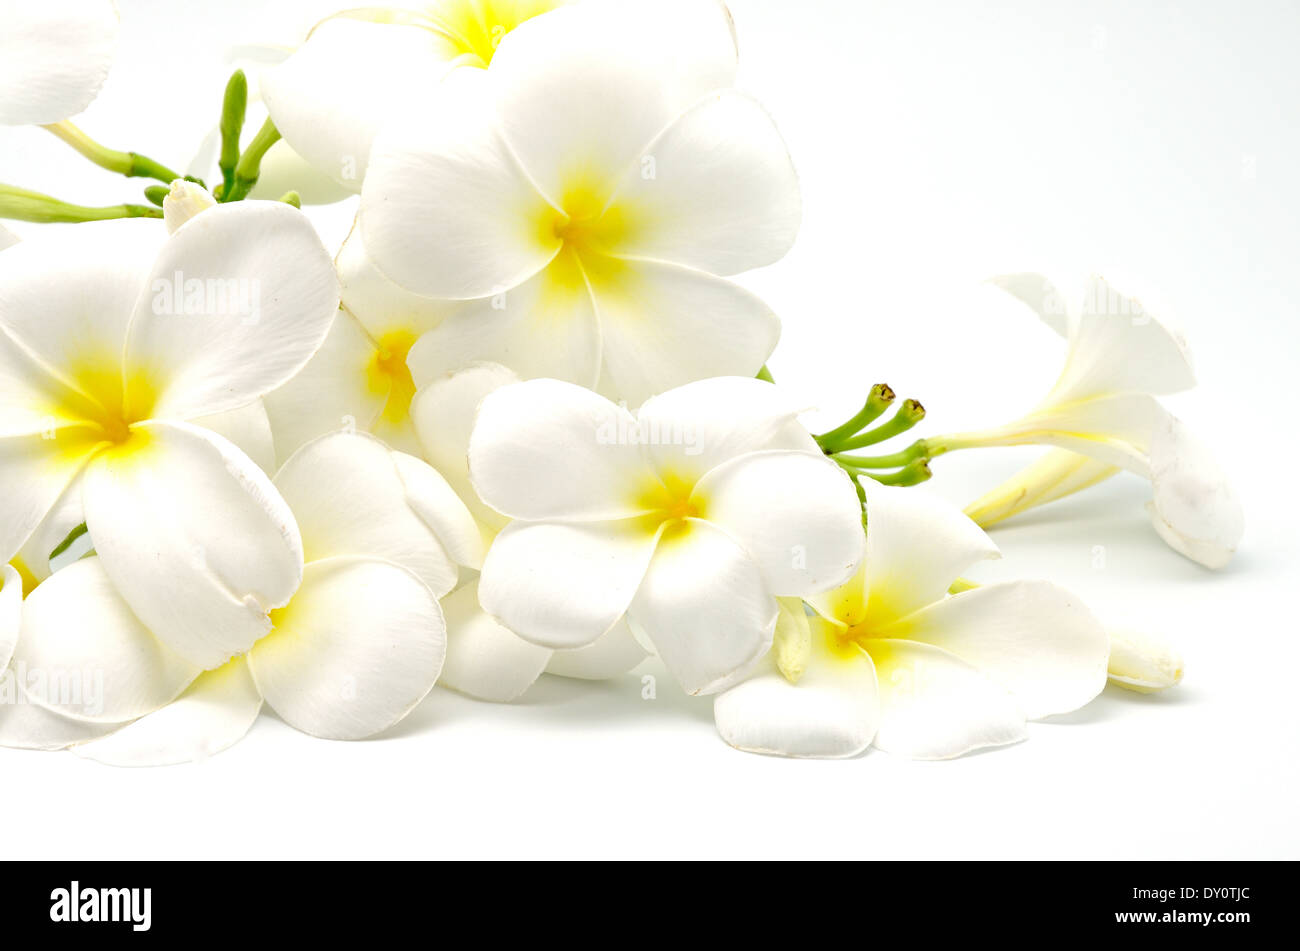 A white and yellow plumeria flower isolated on a white background a white and yellow plumeria flower isolated on a white background mightylinksfo